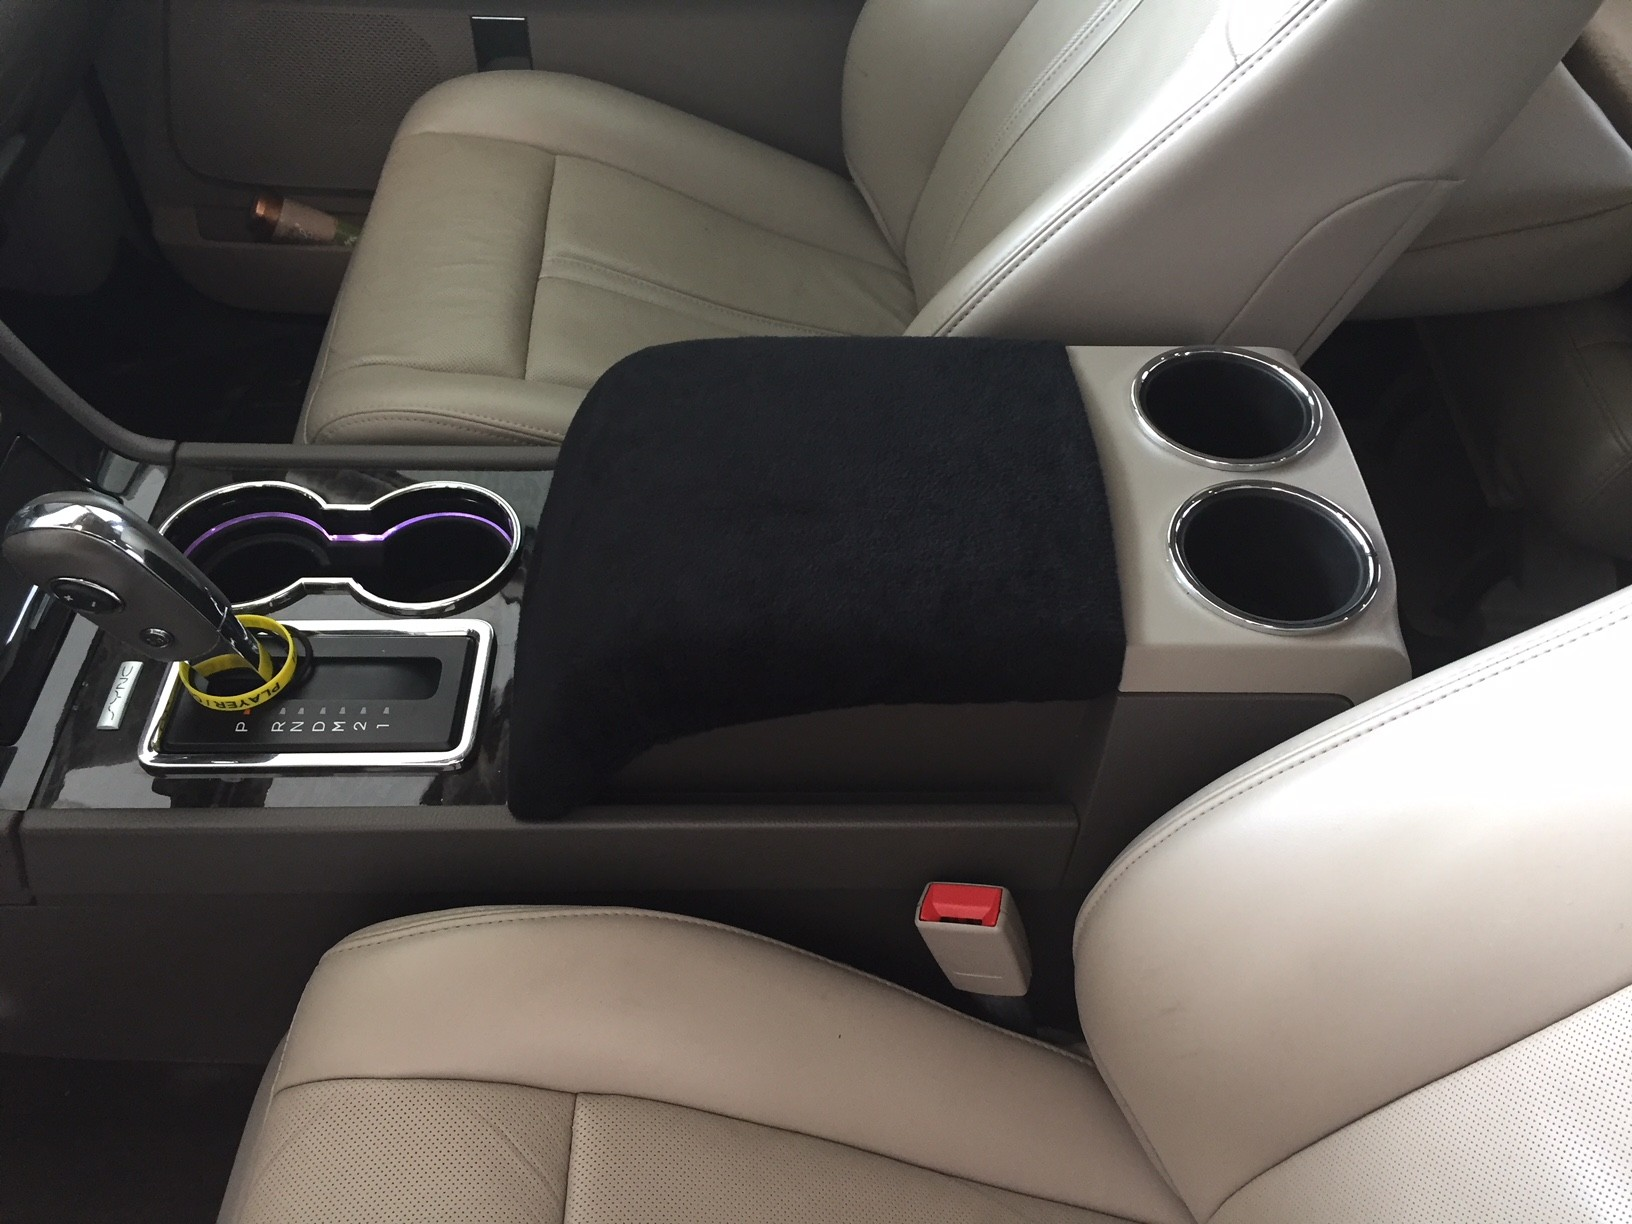 Fleece Console Cover - Lincoln Navigator 2007-2017 - Fleece Material